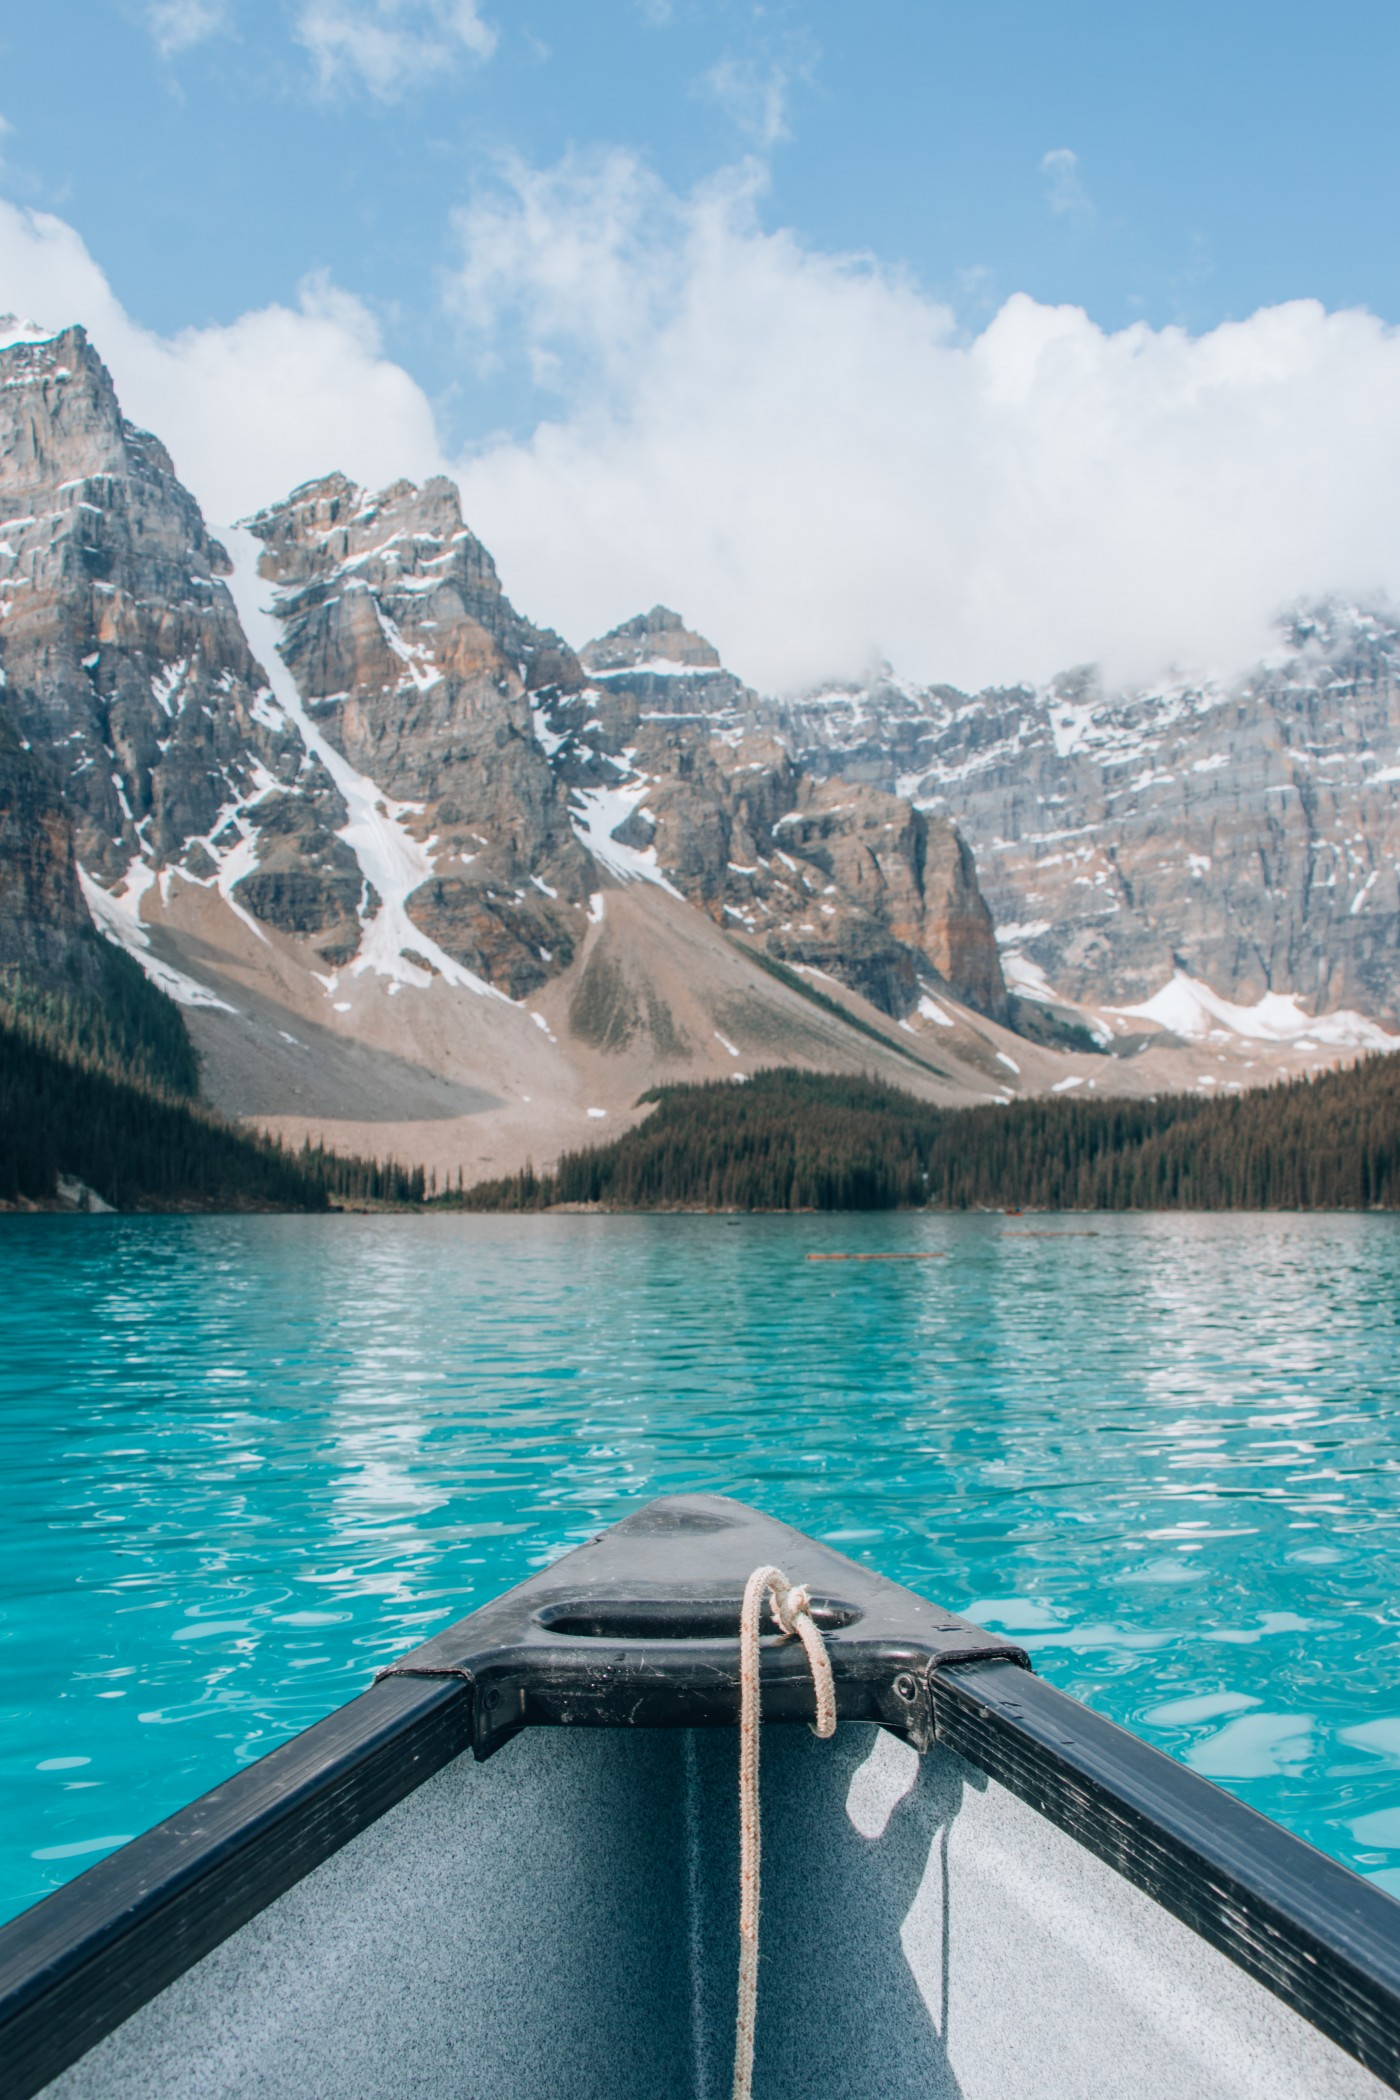 Moraine Lake Canoeing | Top 10 Photography Spots in Banff National Park